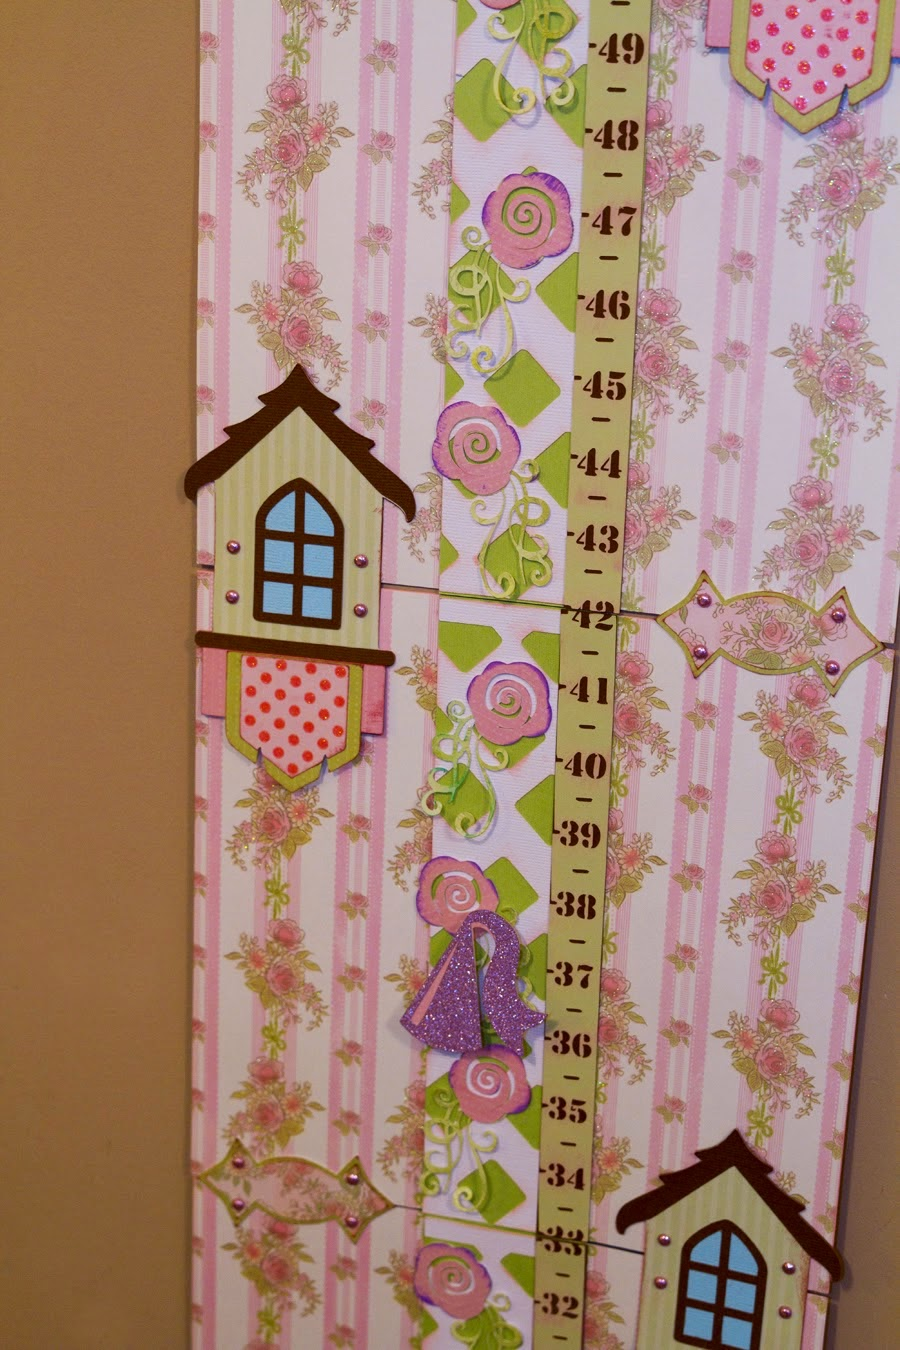 another view of the rose vine ruler showing princess hat as the height marker